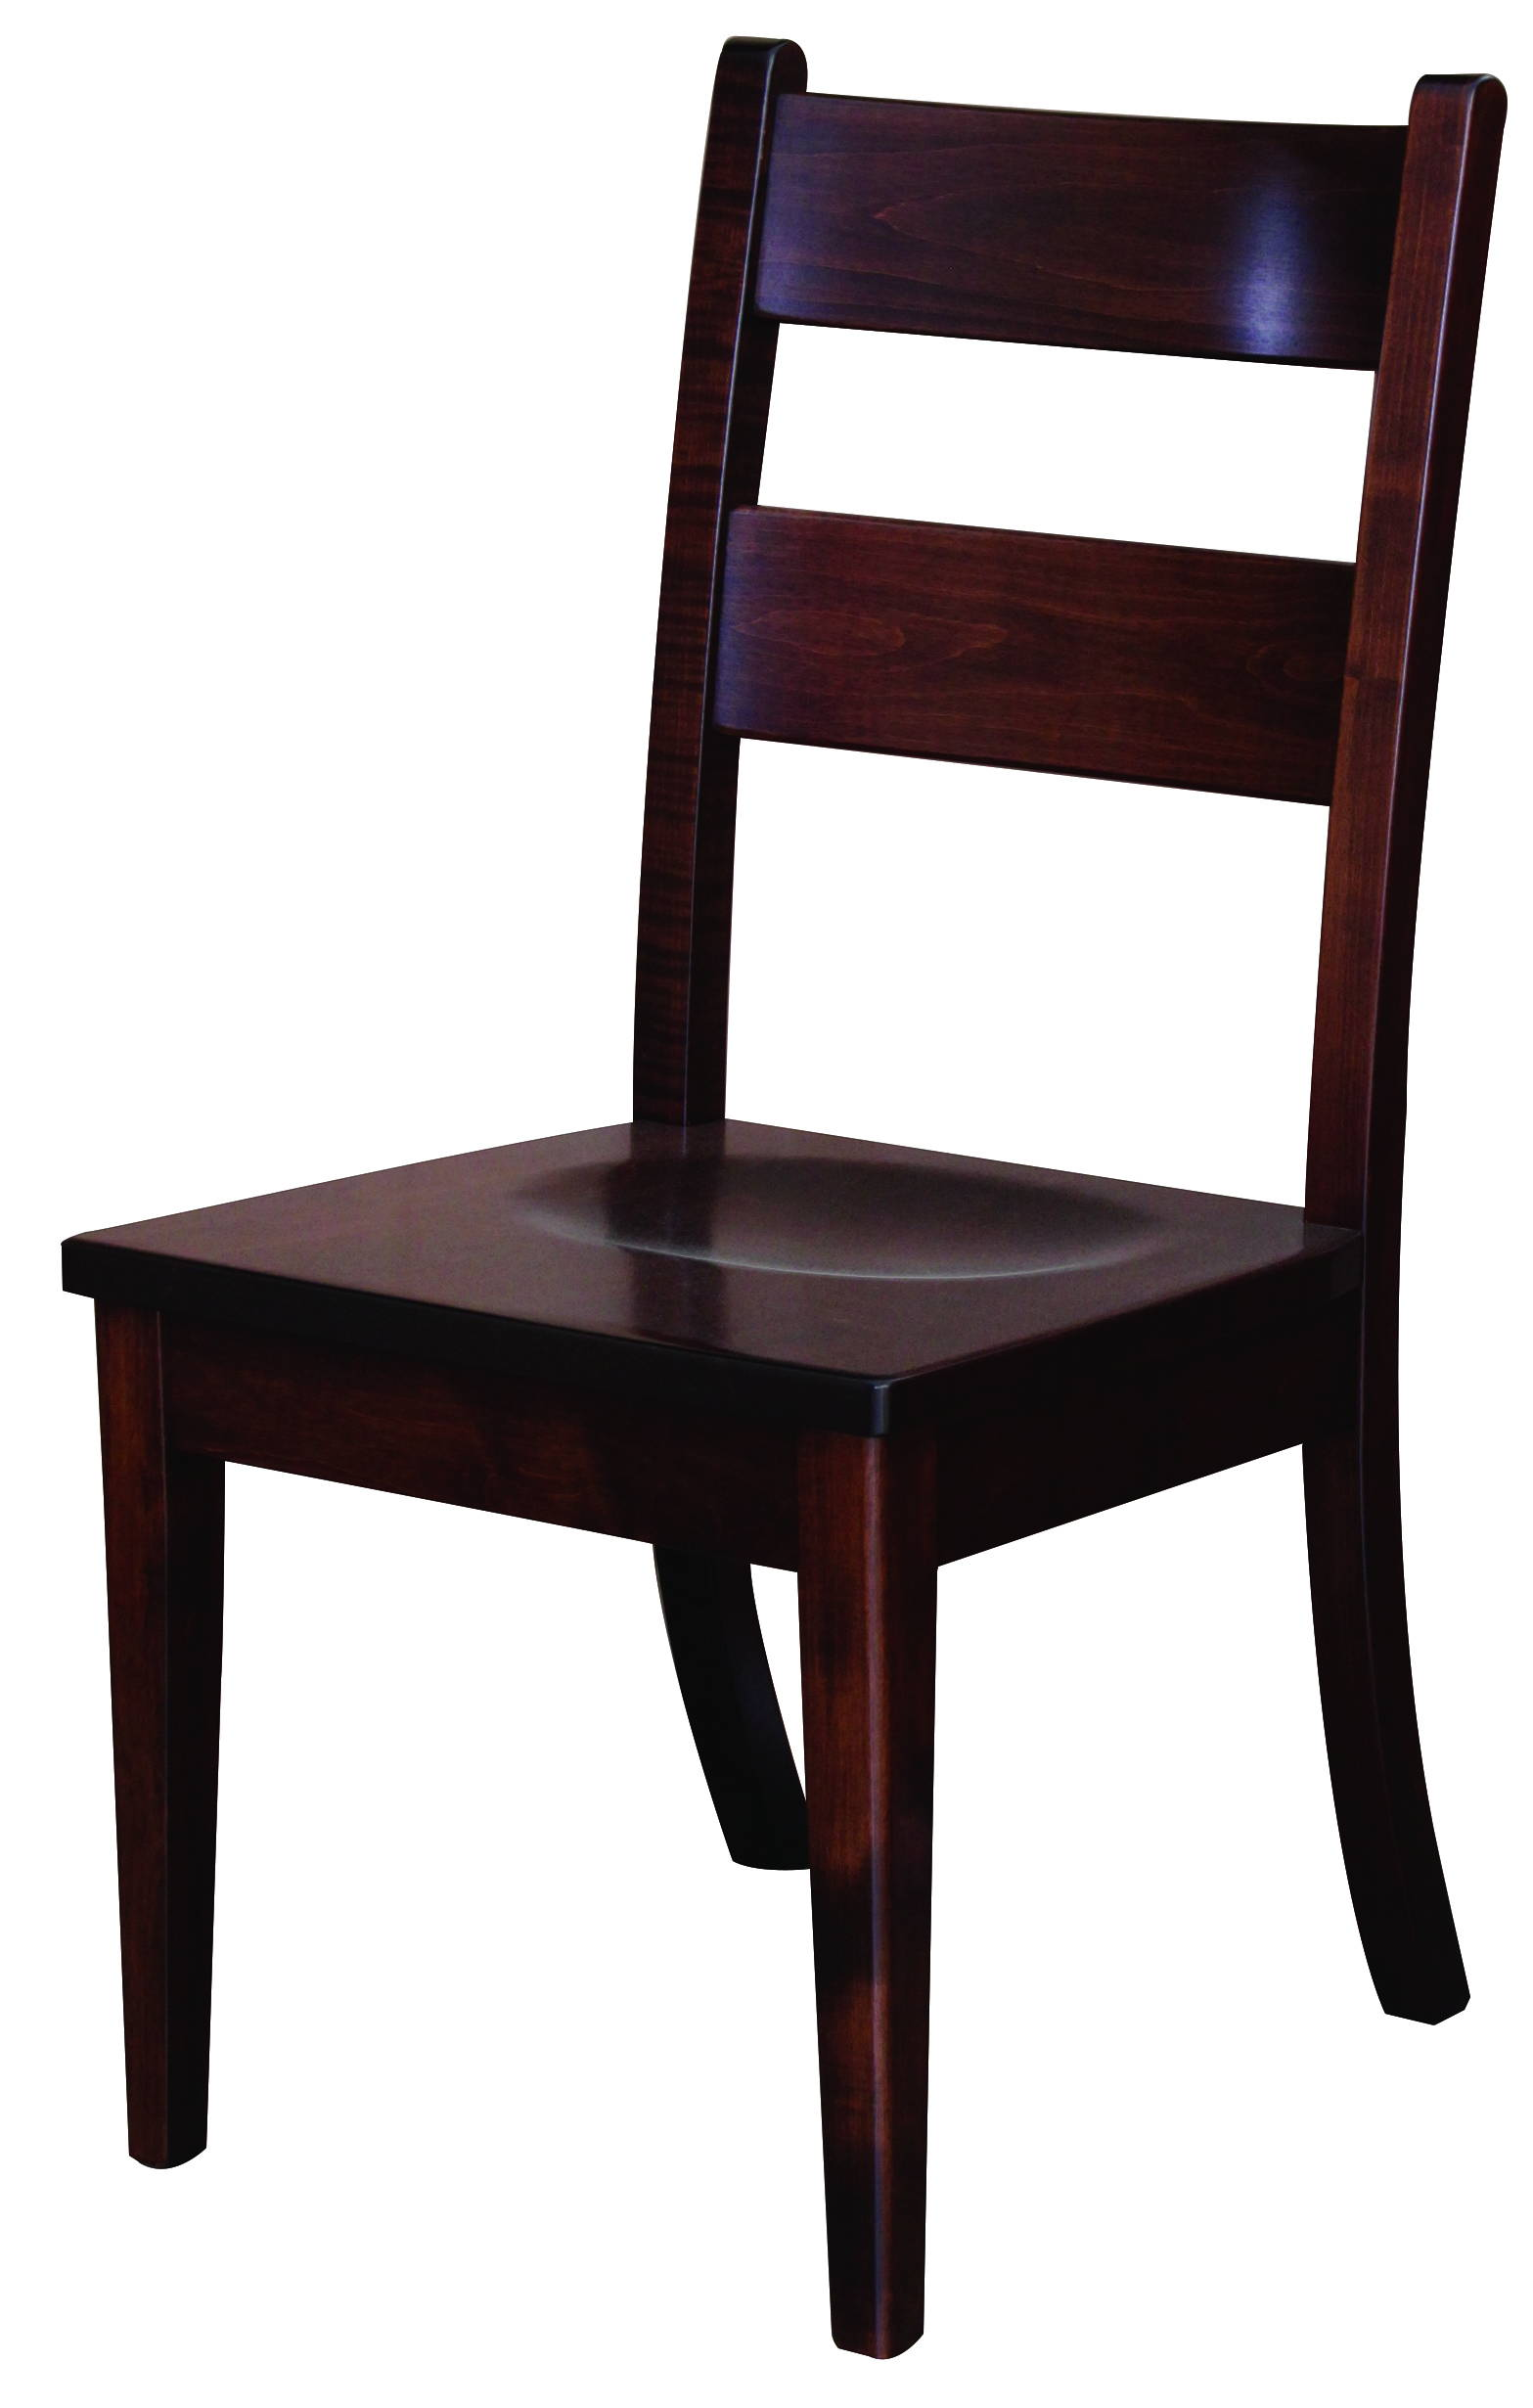 London Solid Wood, Handcrafted Kitchen Chair or DIning Chair from Harvest Home Interiors Amish Furniture